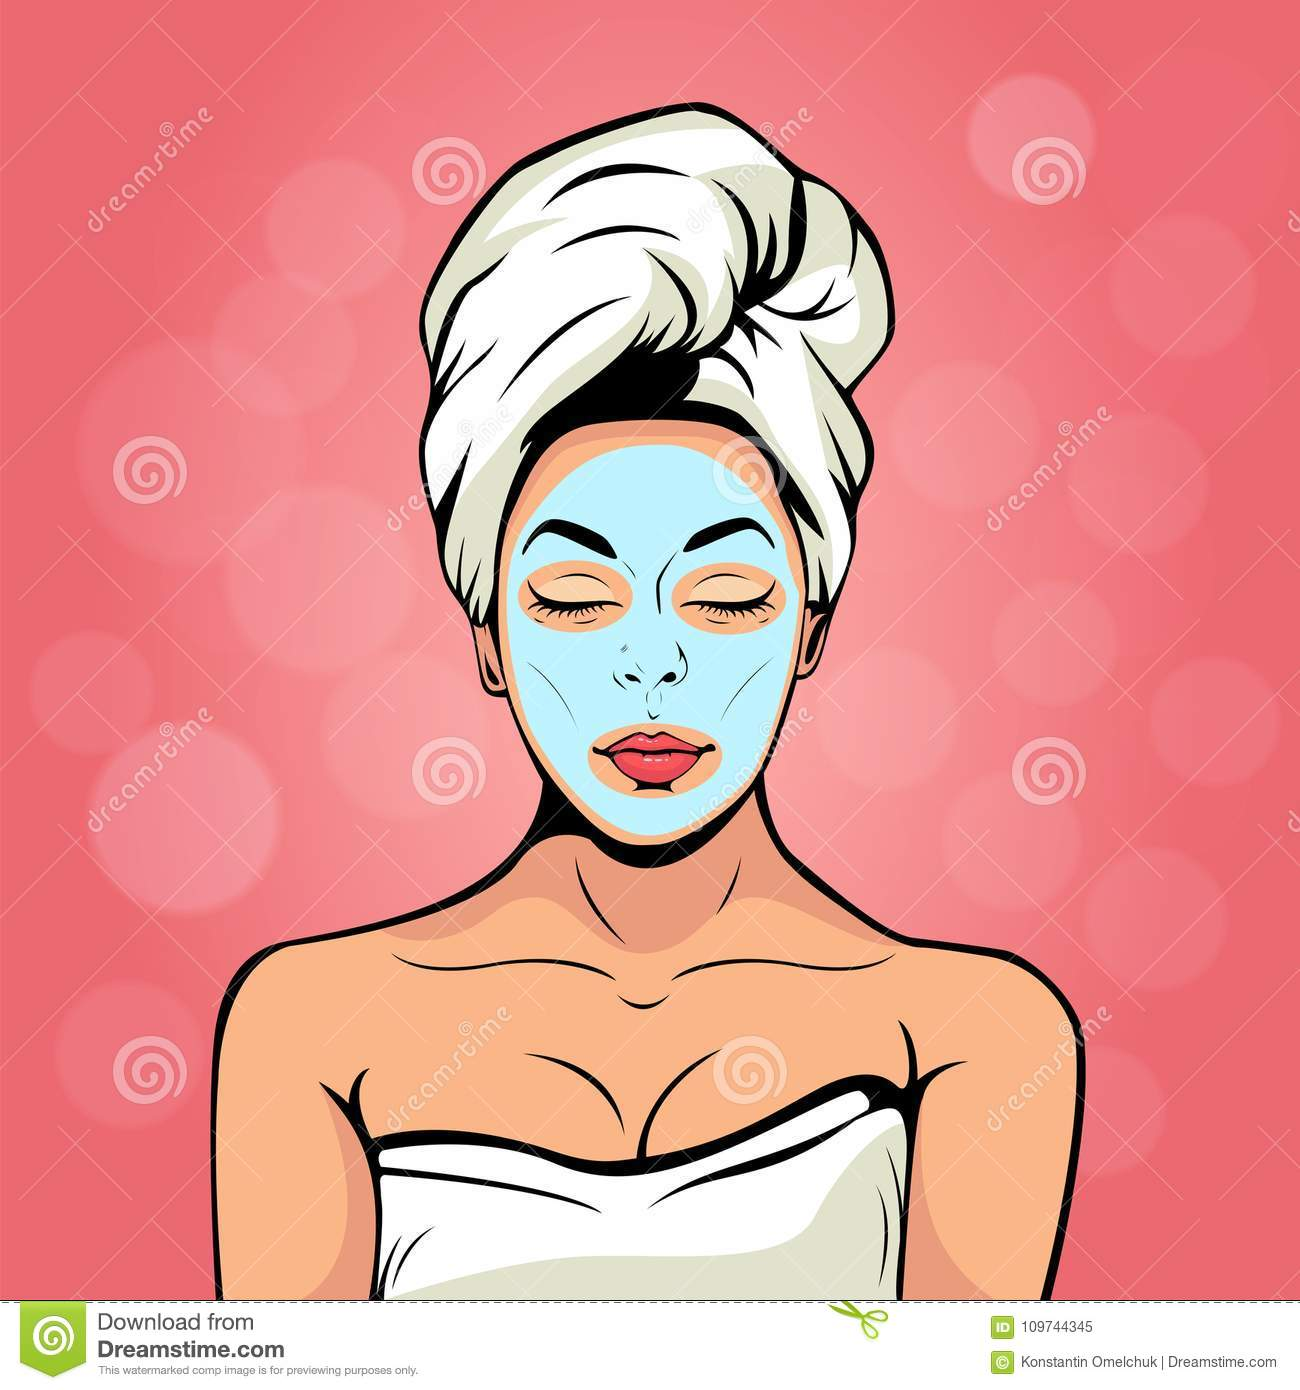 young woman in bath towel with cosmetic mask on her face. Pop art vector illustration